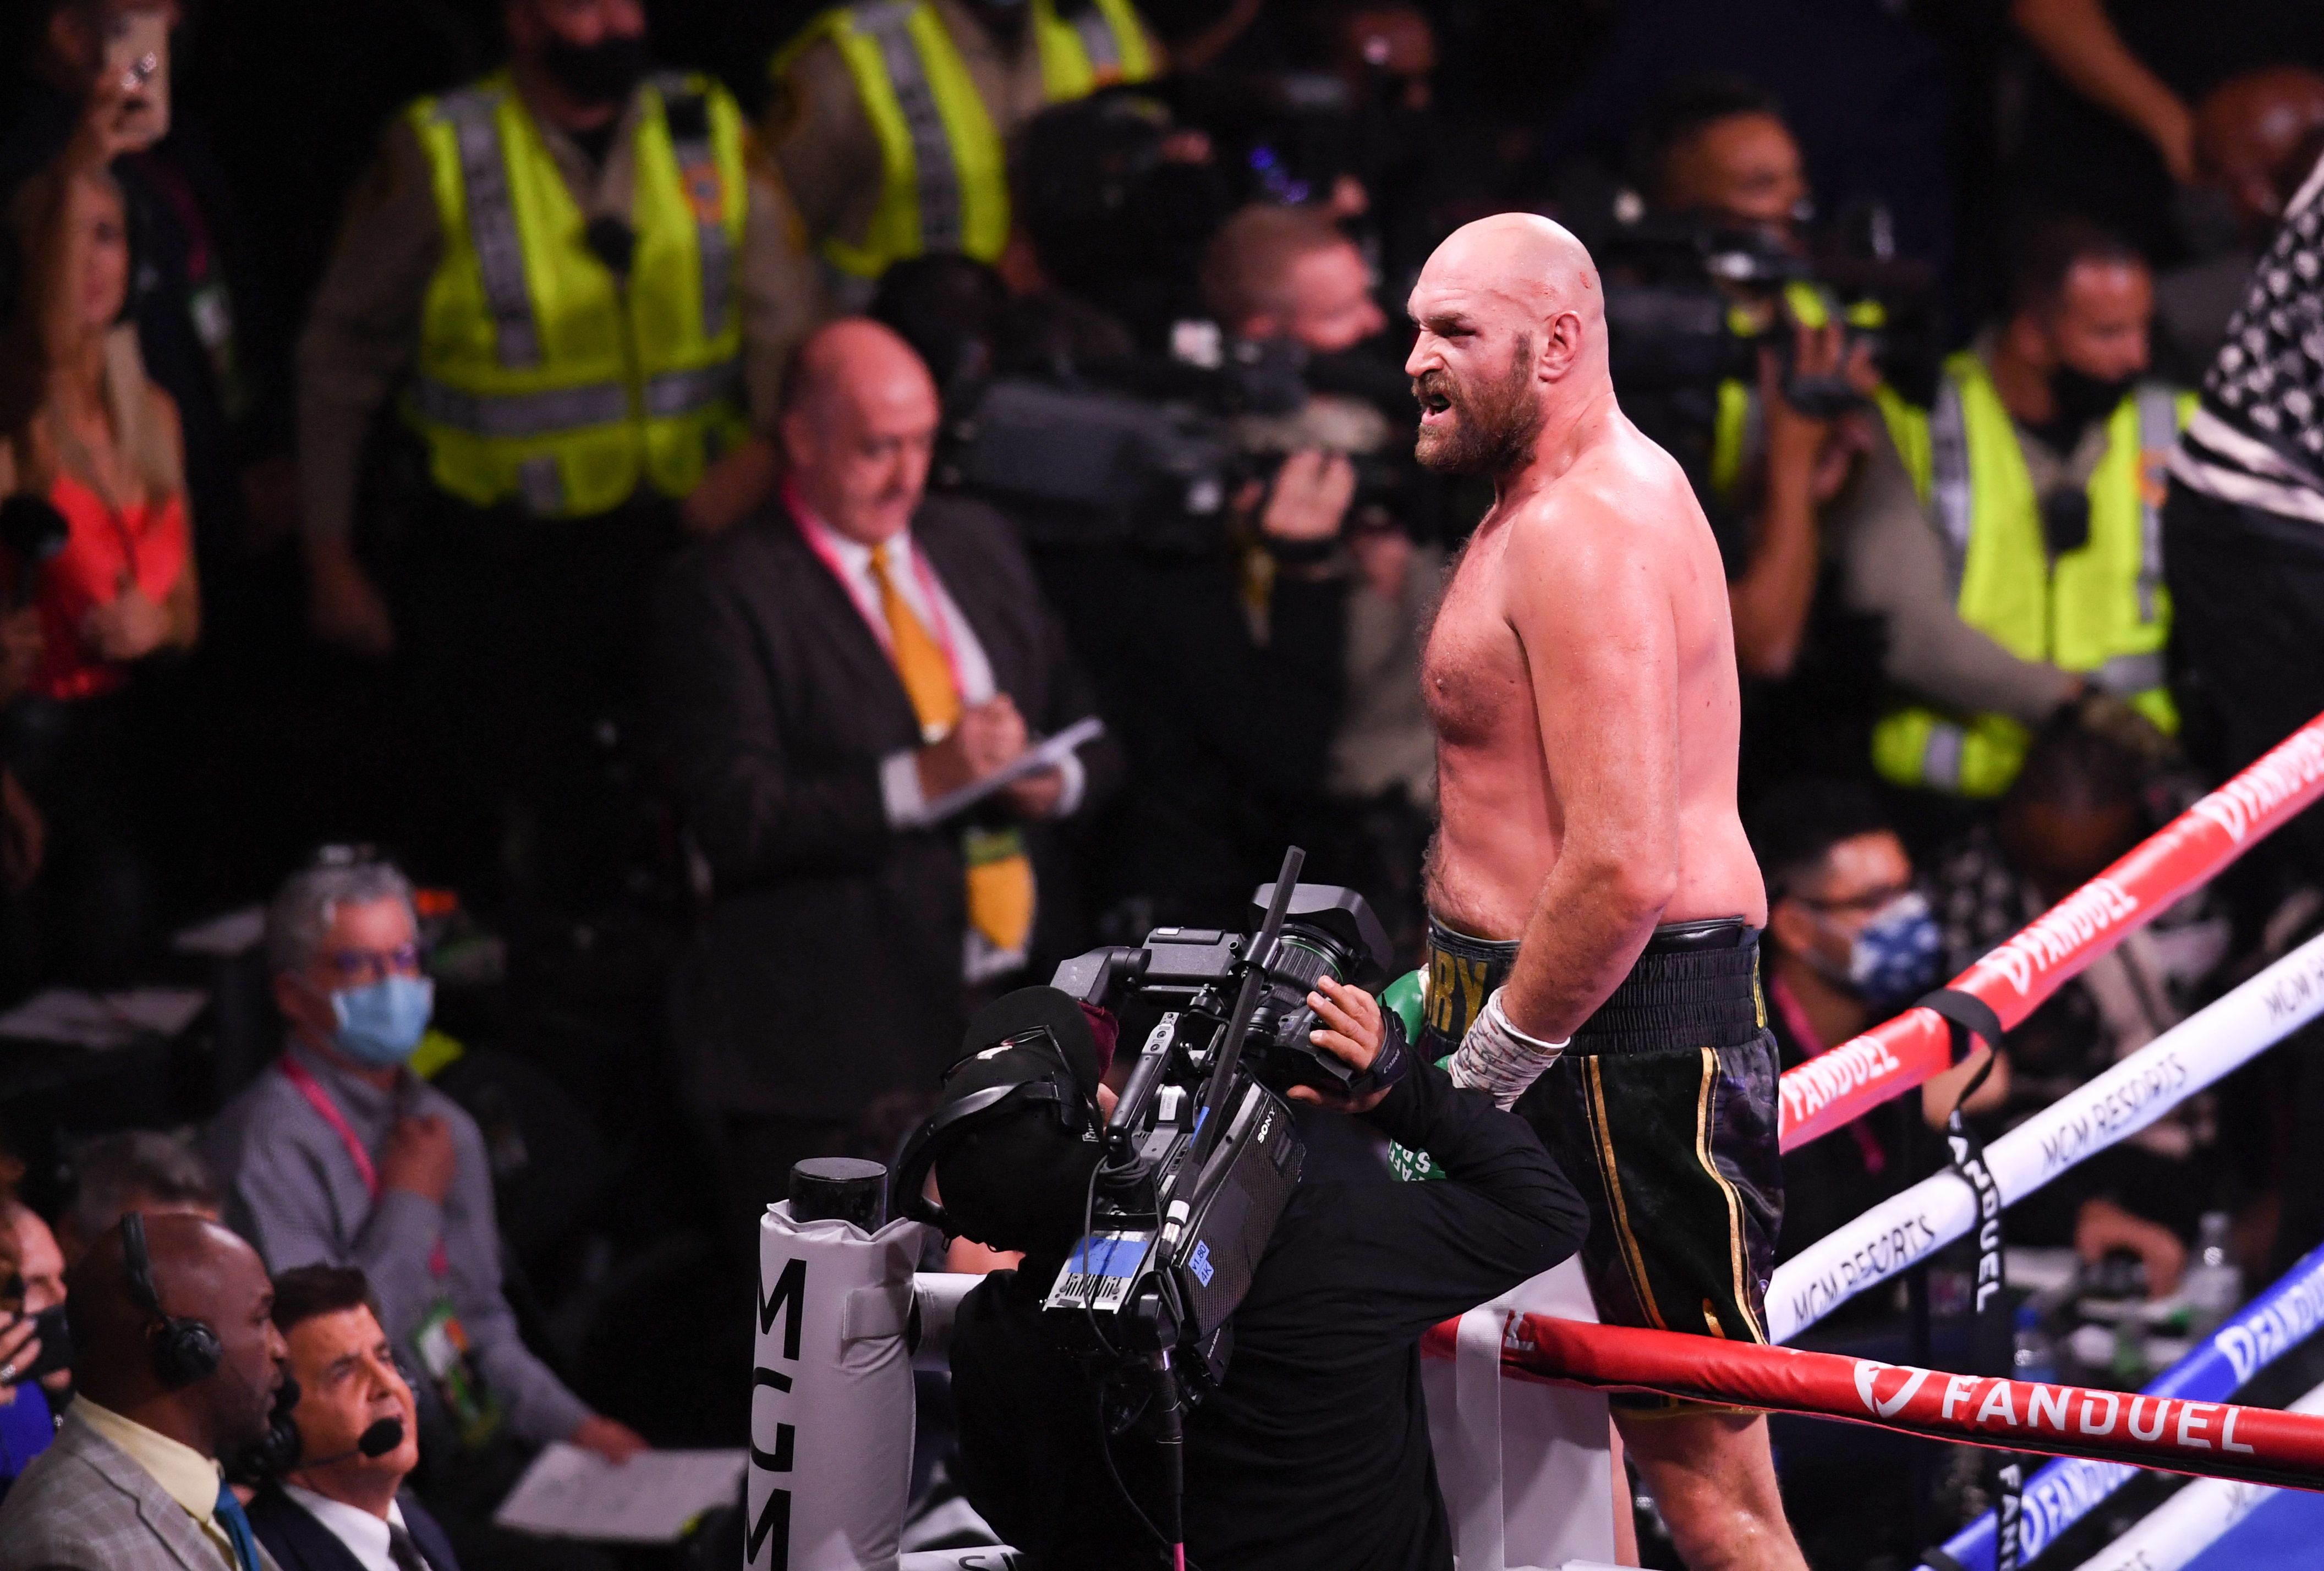 Tyson Fury is still undefeated after a classic with Deontay Wilder